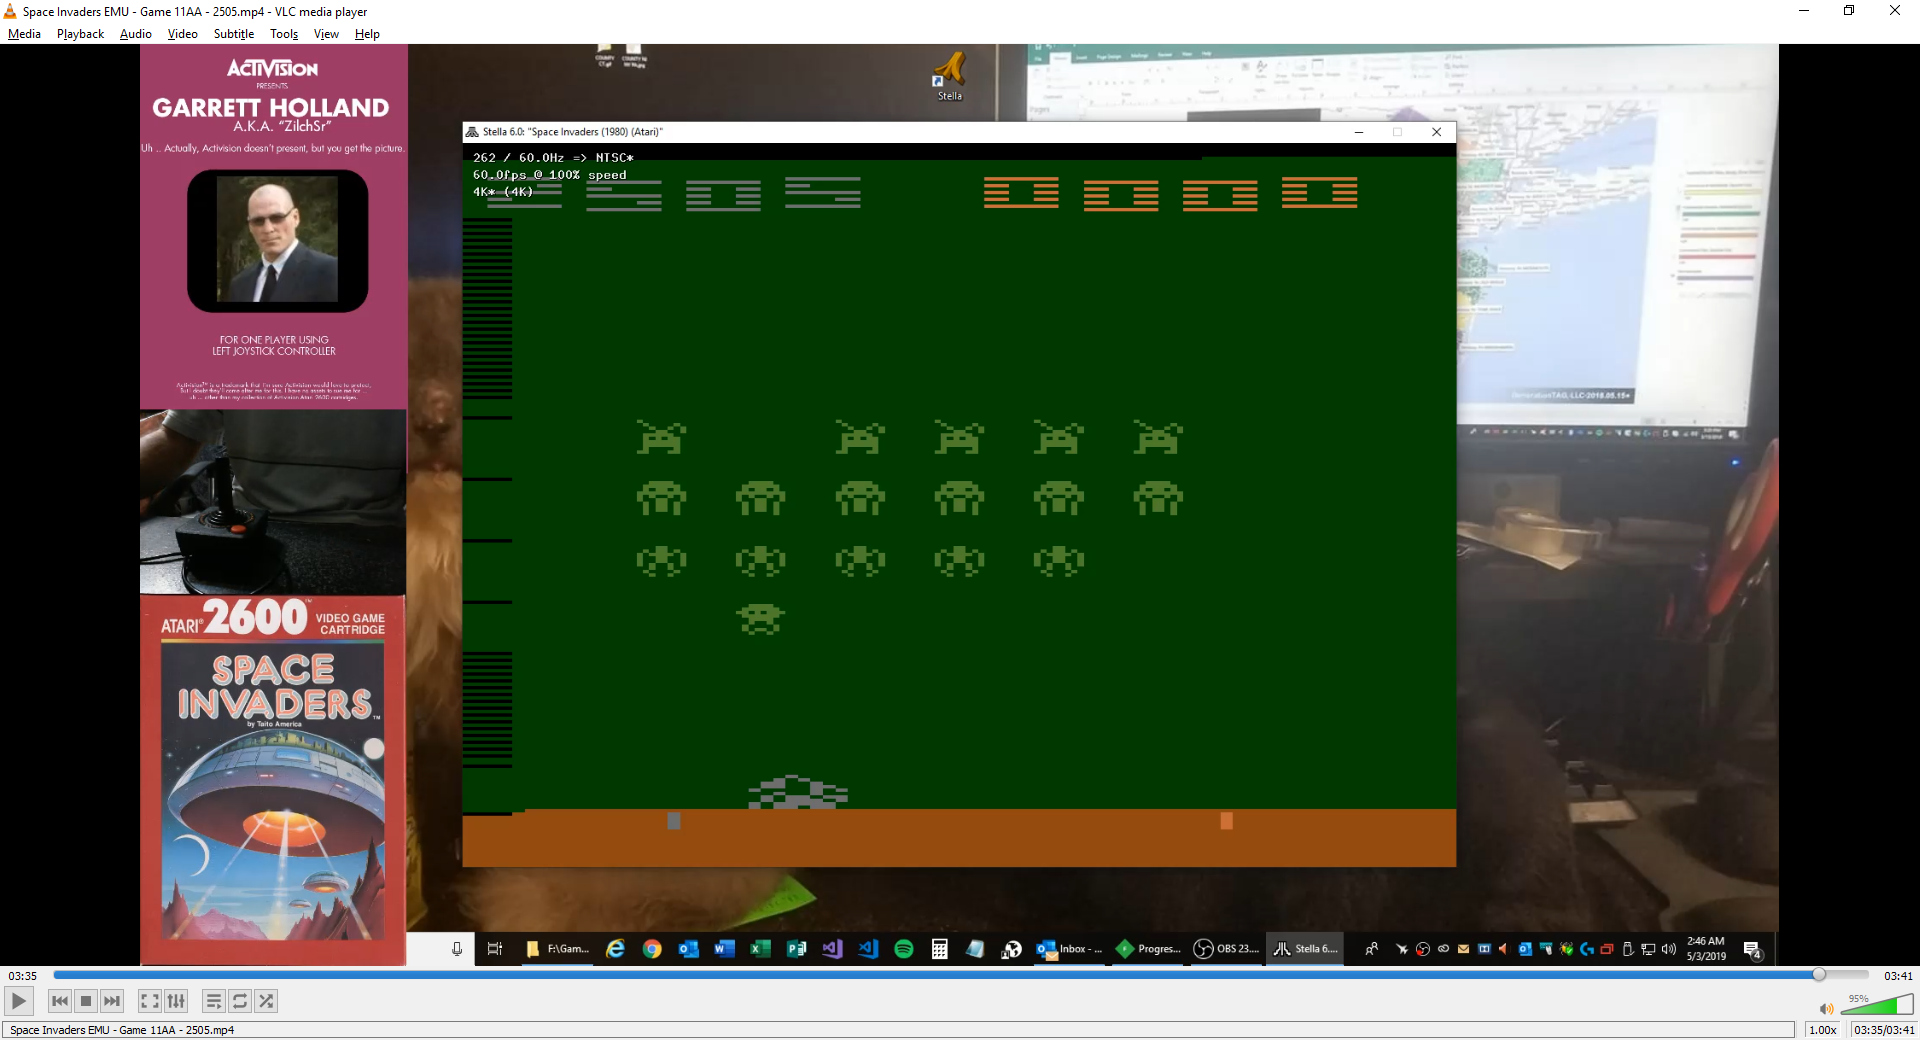 ZilchSr: Space Invaders: Game 11 (Atari 2600 Emulated Expert/A Mode) 2,505 points on 2019-05-03 01:50:24